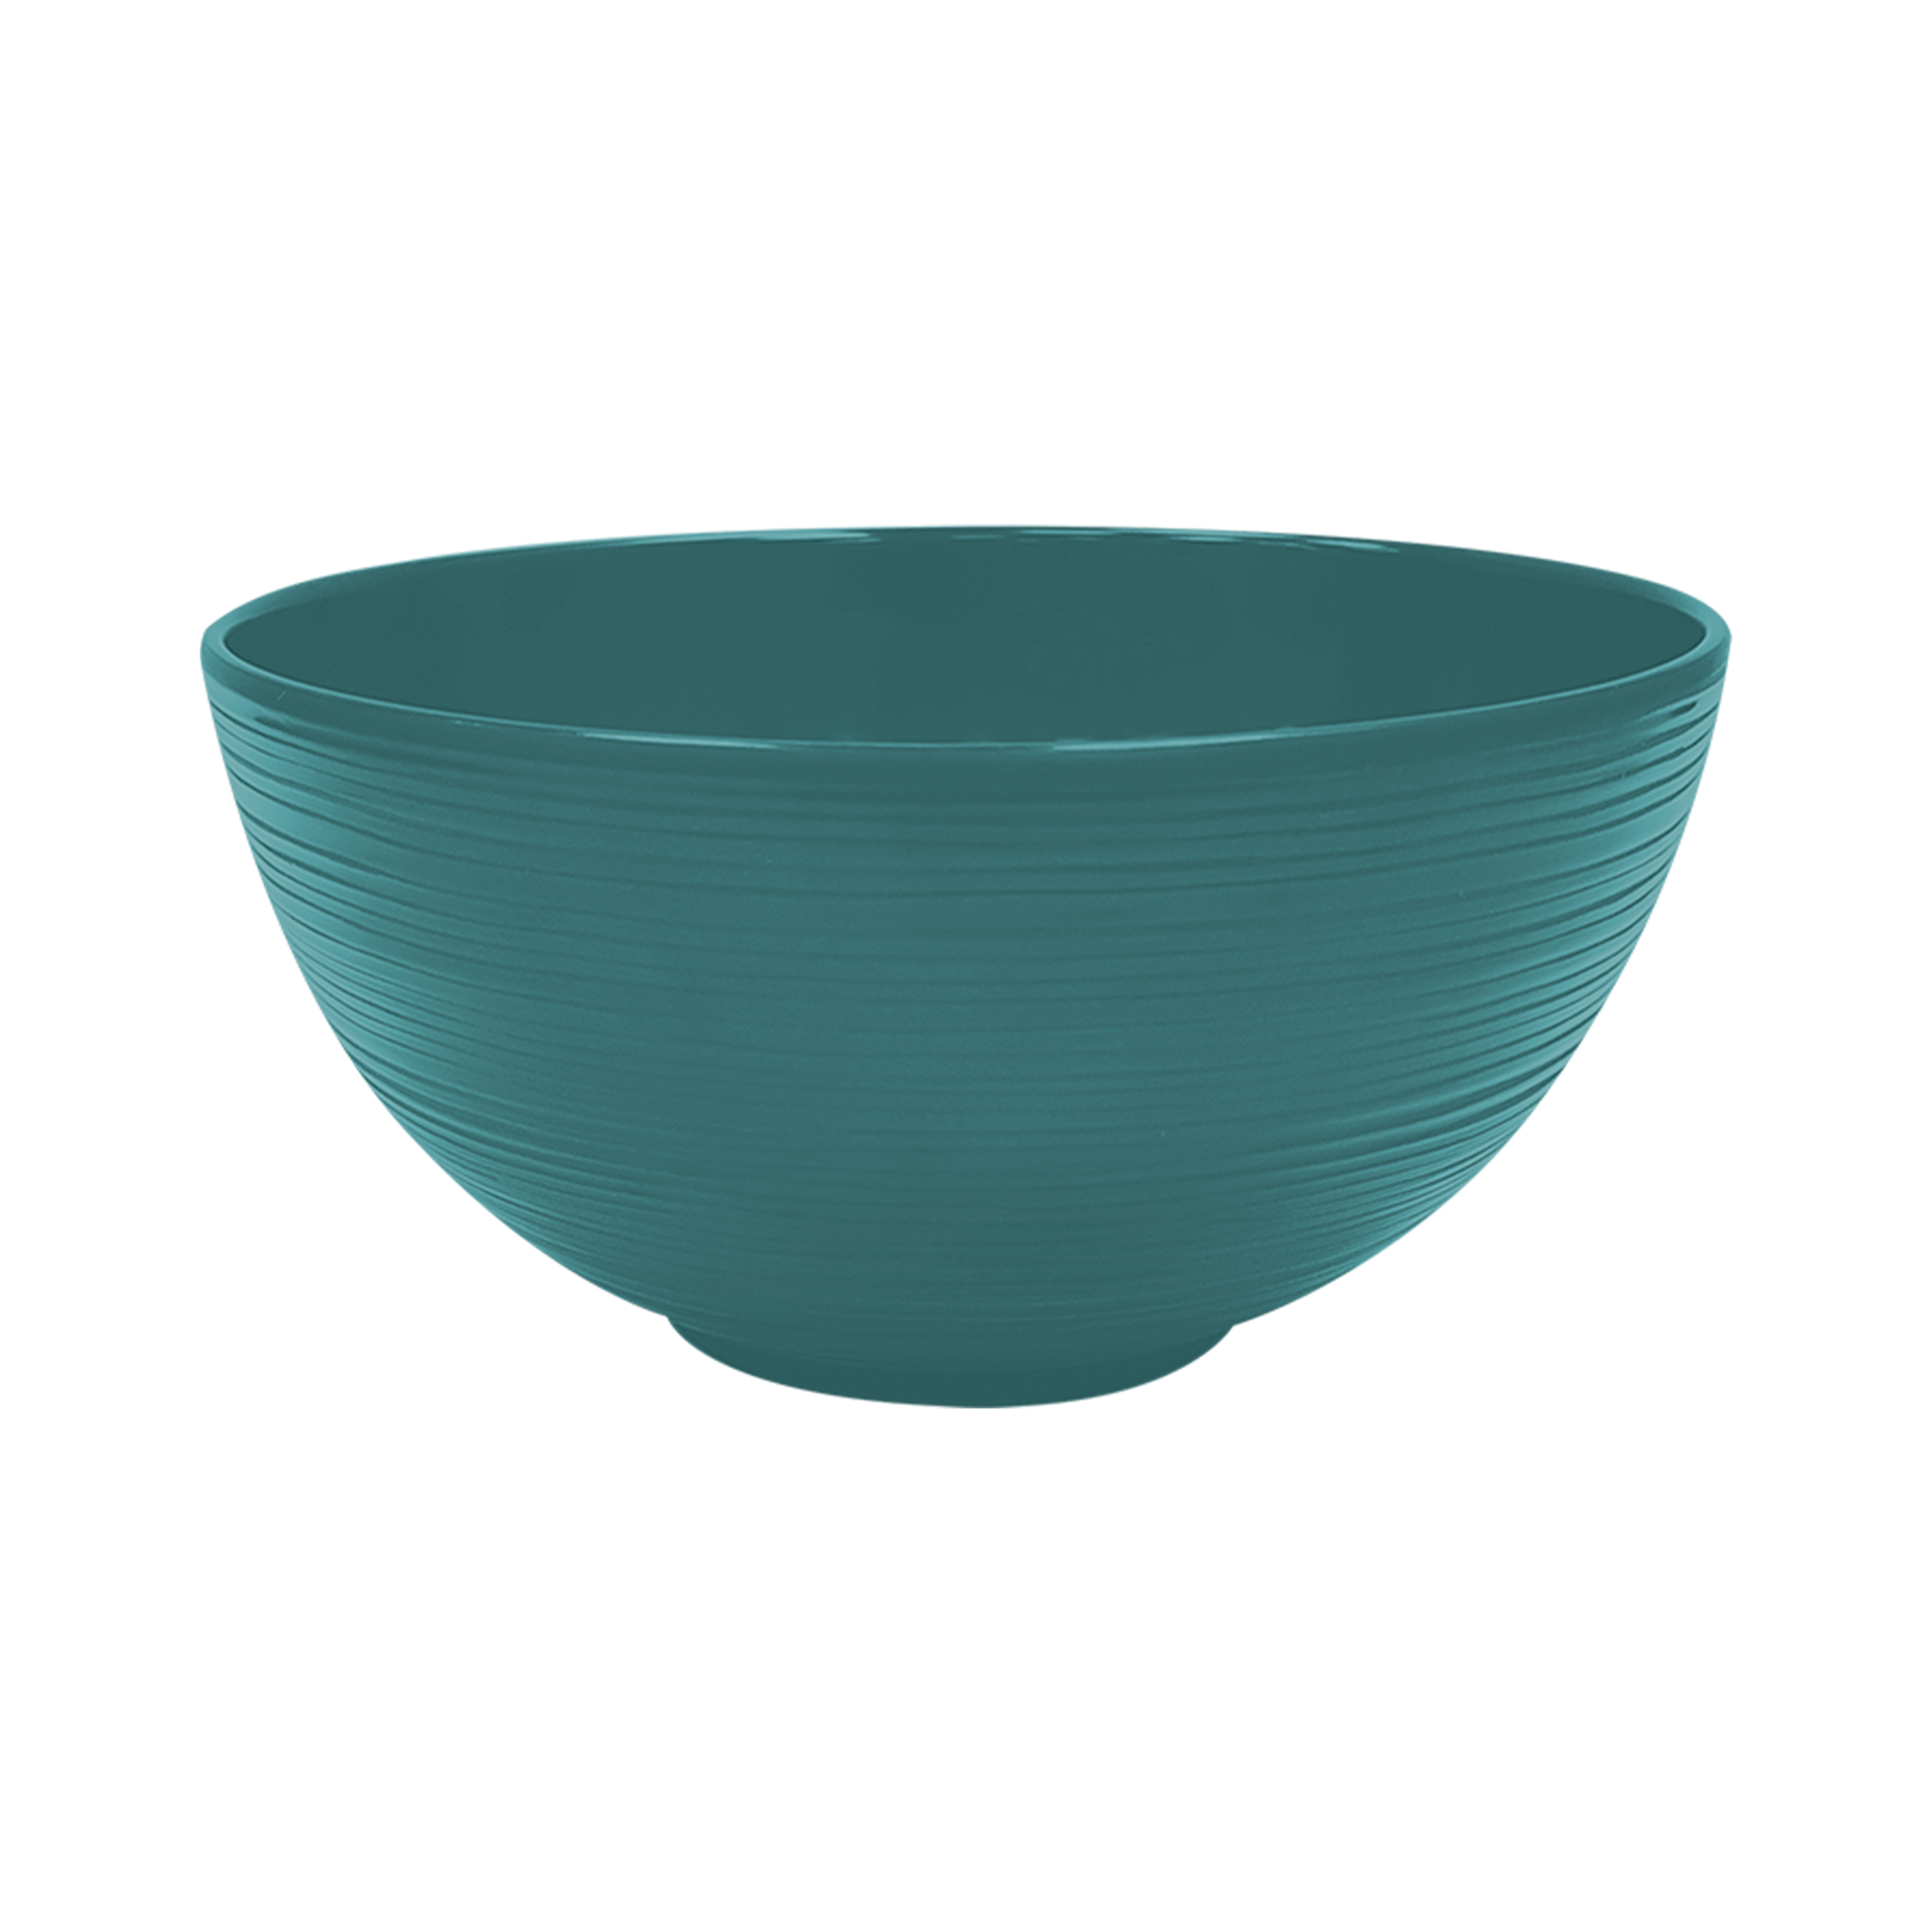 American Conventional Plate & Bowl Sets, Marine, 12-piece set slideshow image 6